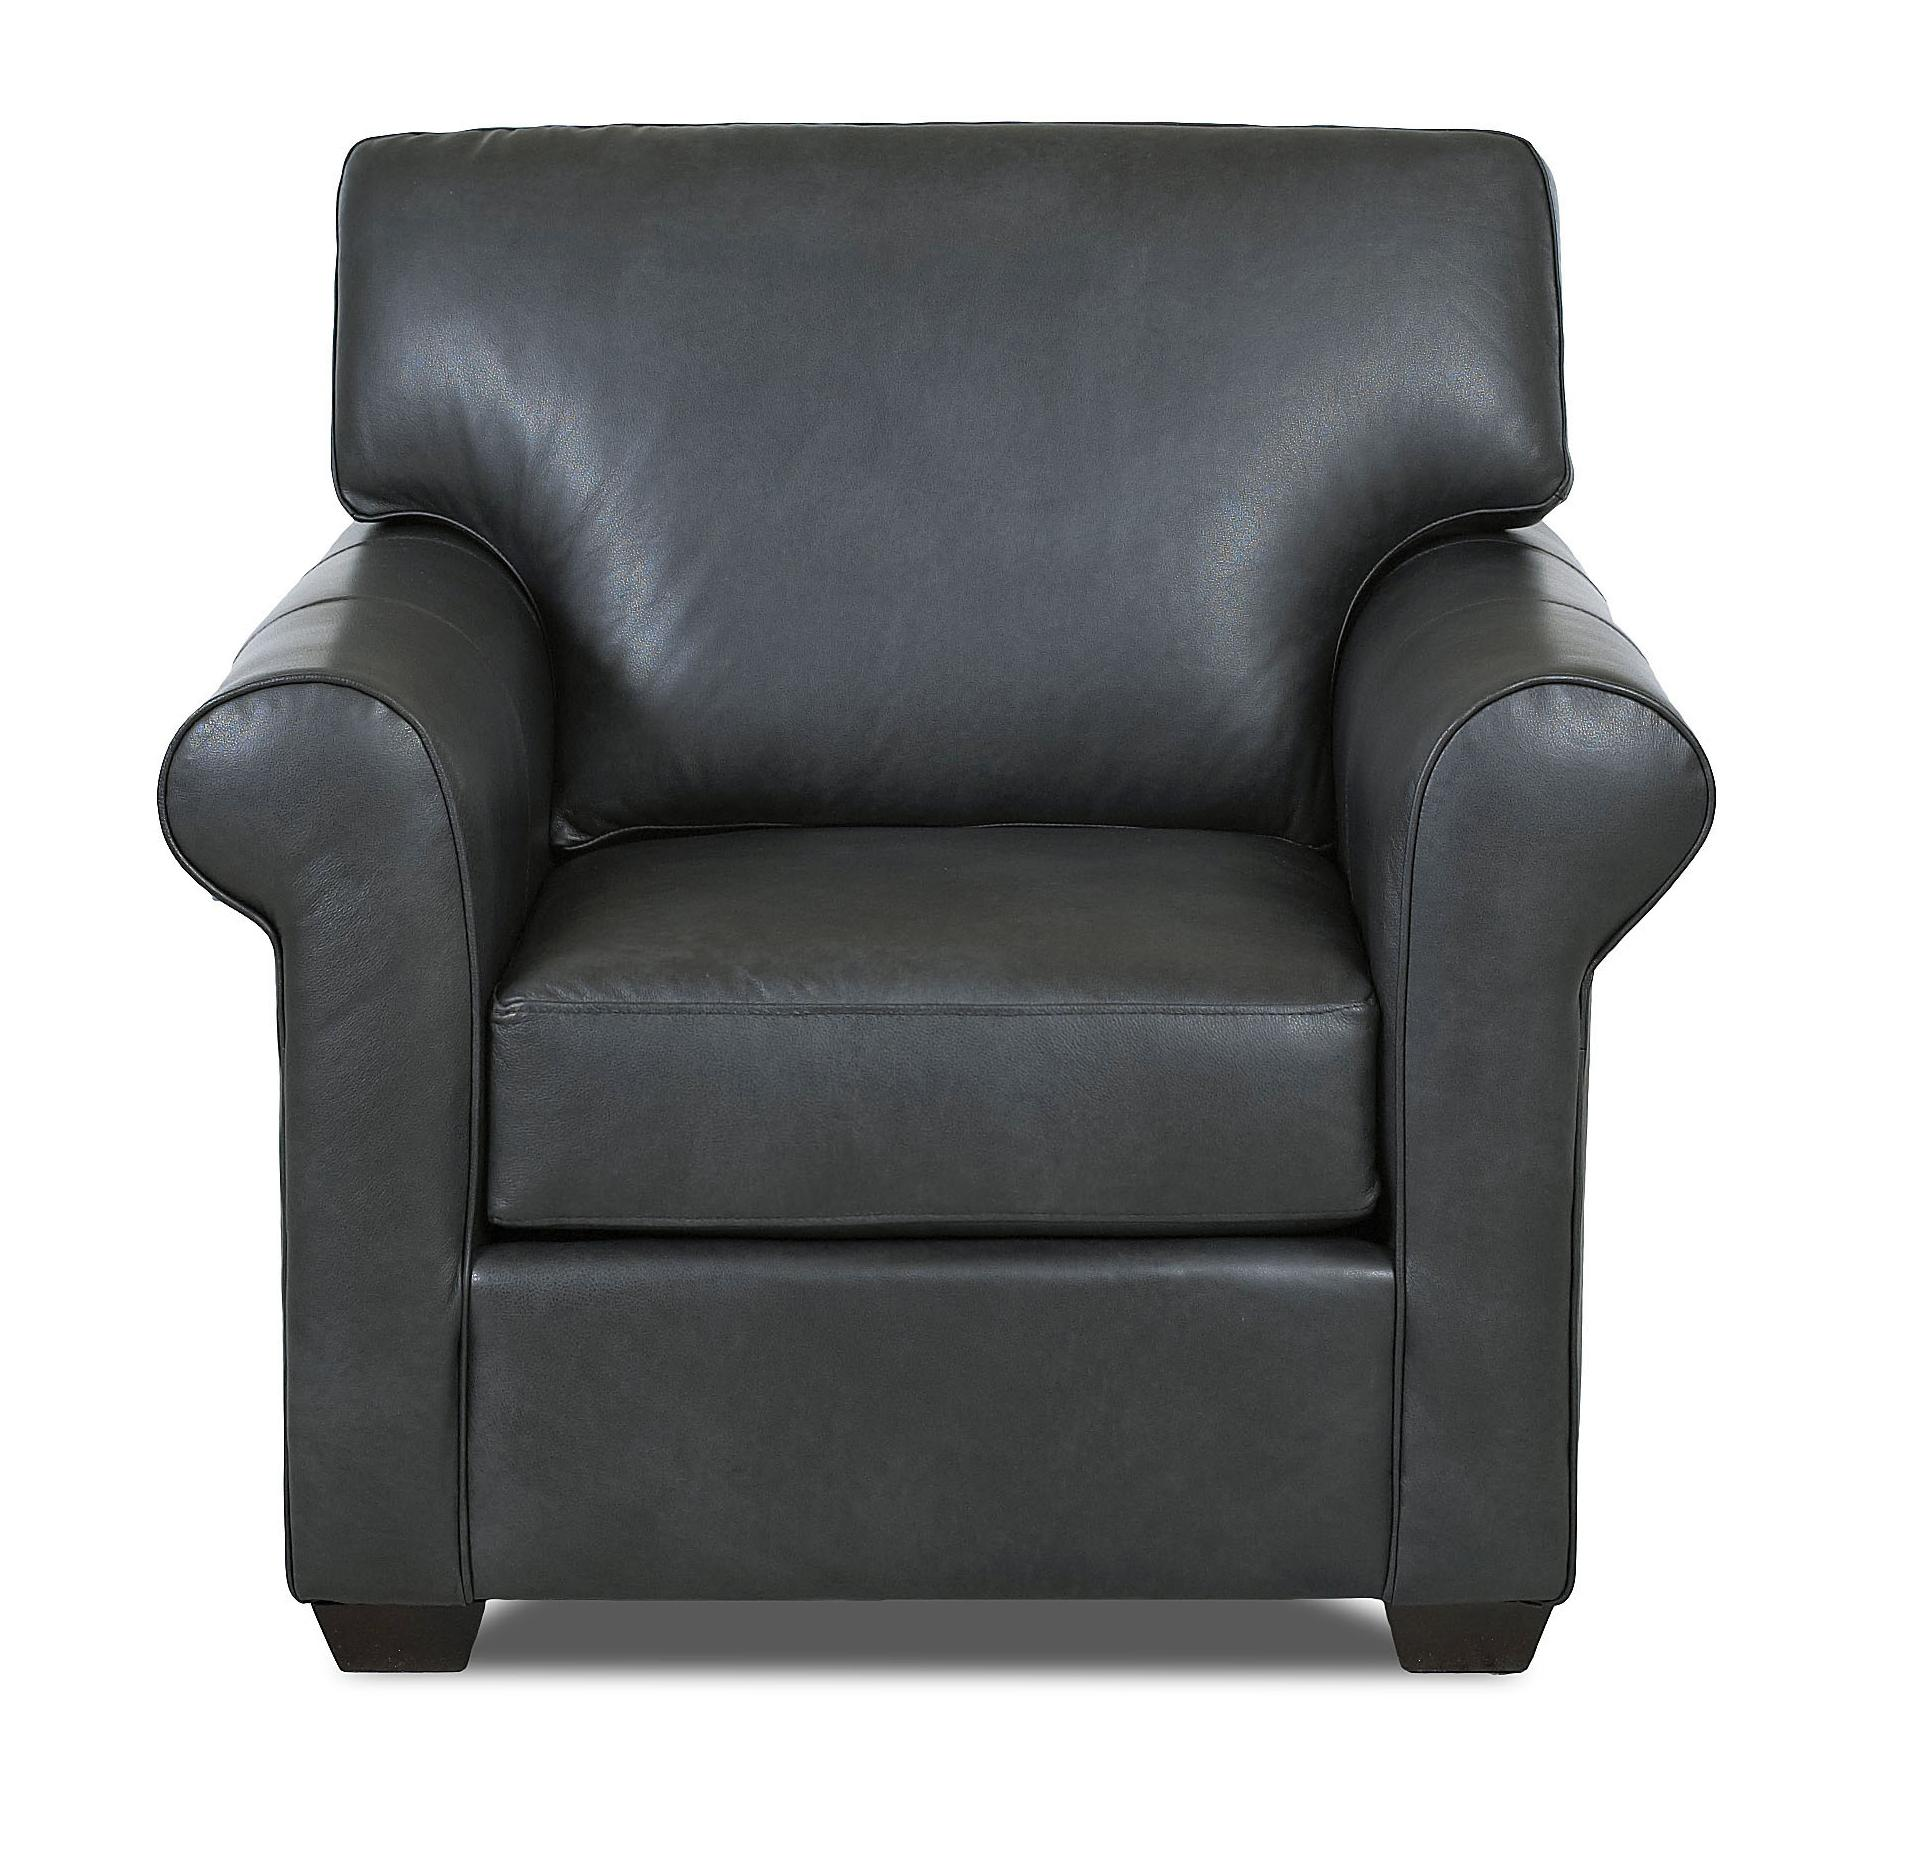 Klaussner Canoy Chair - Item Number: LT50200 C